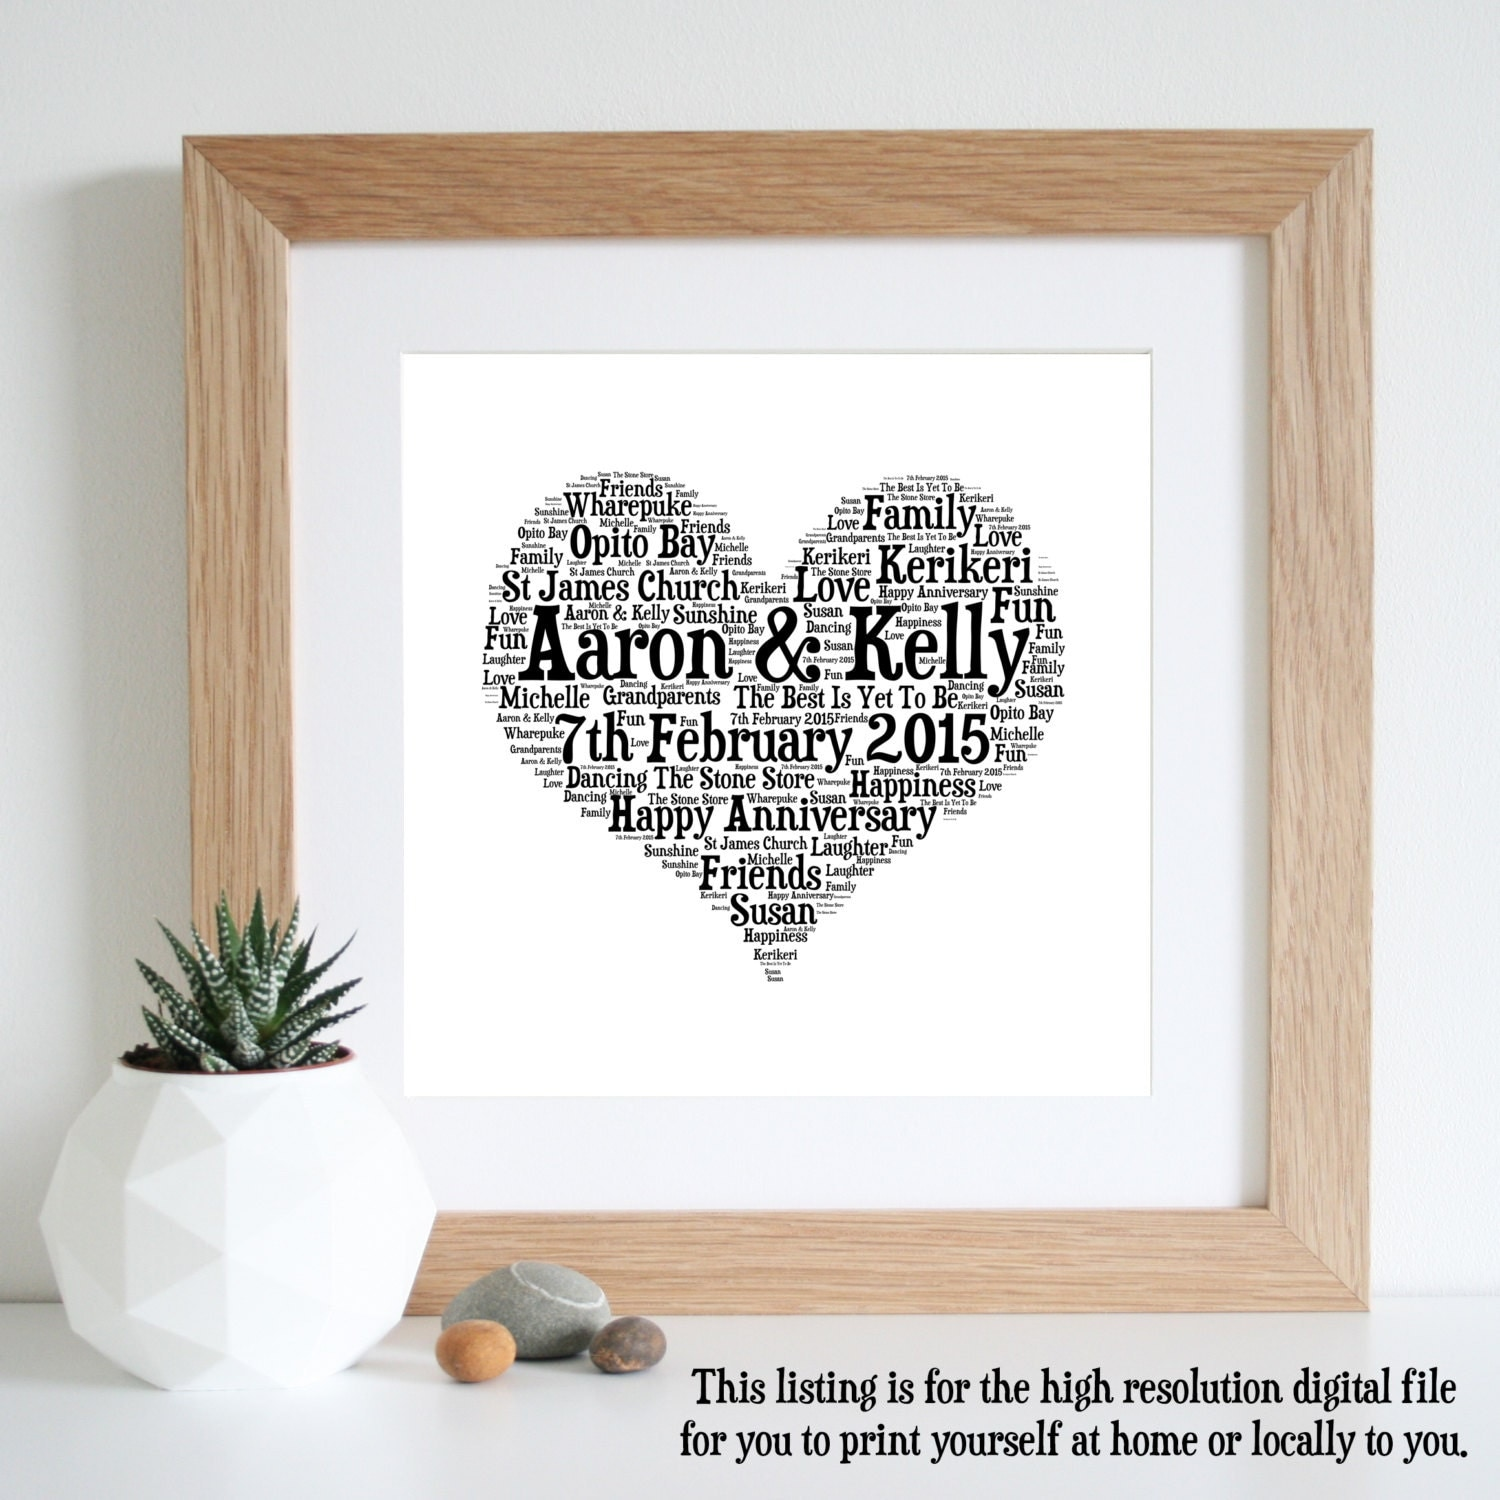 1 Year Wedding Anniversary Gift Ideas Paper : Ideas Traditional 1st Wedding Anniversary Gifts 1st anniversary gift ...